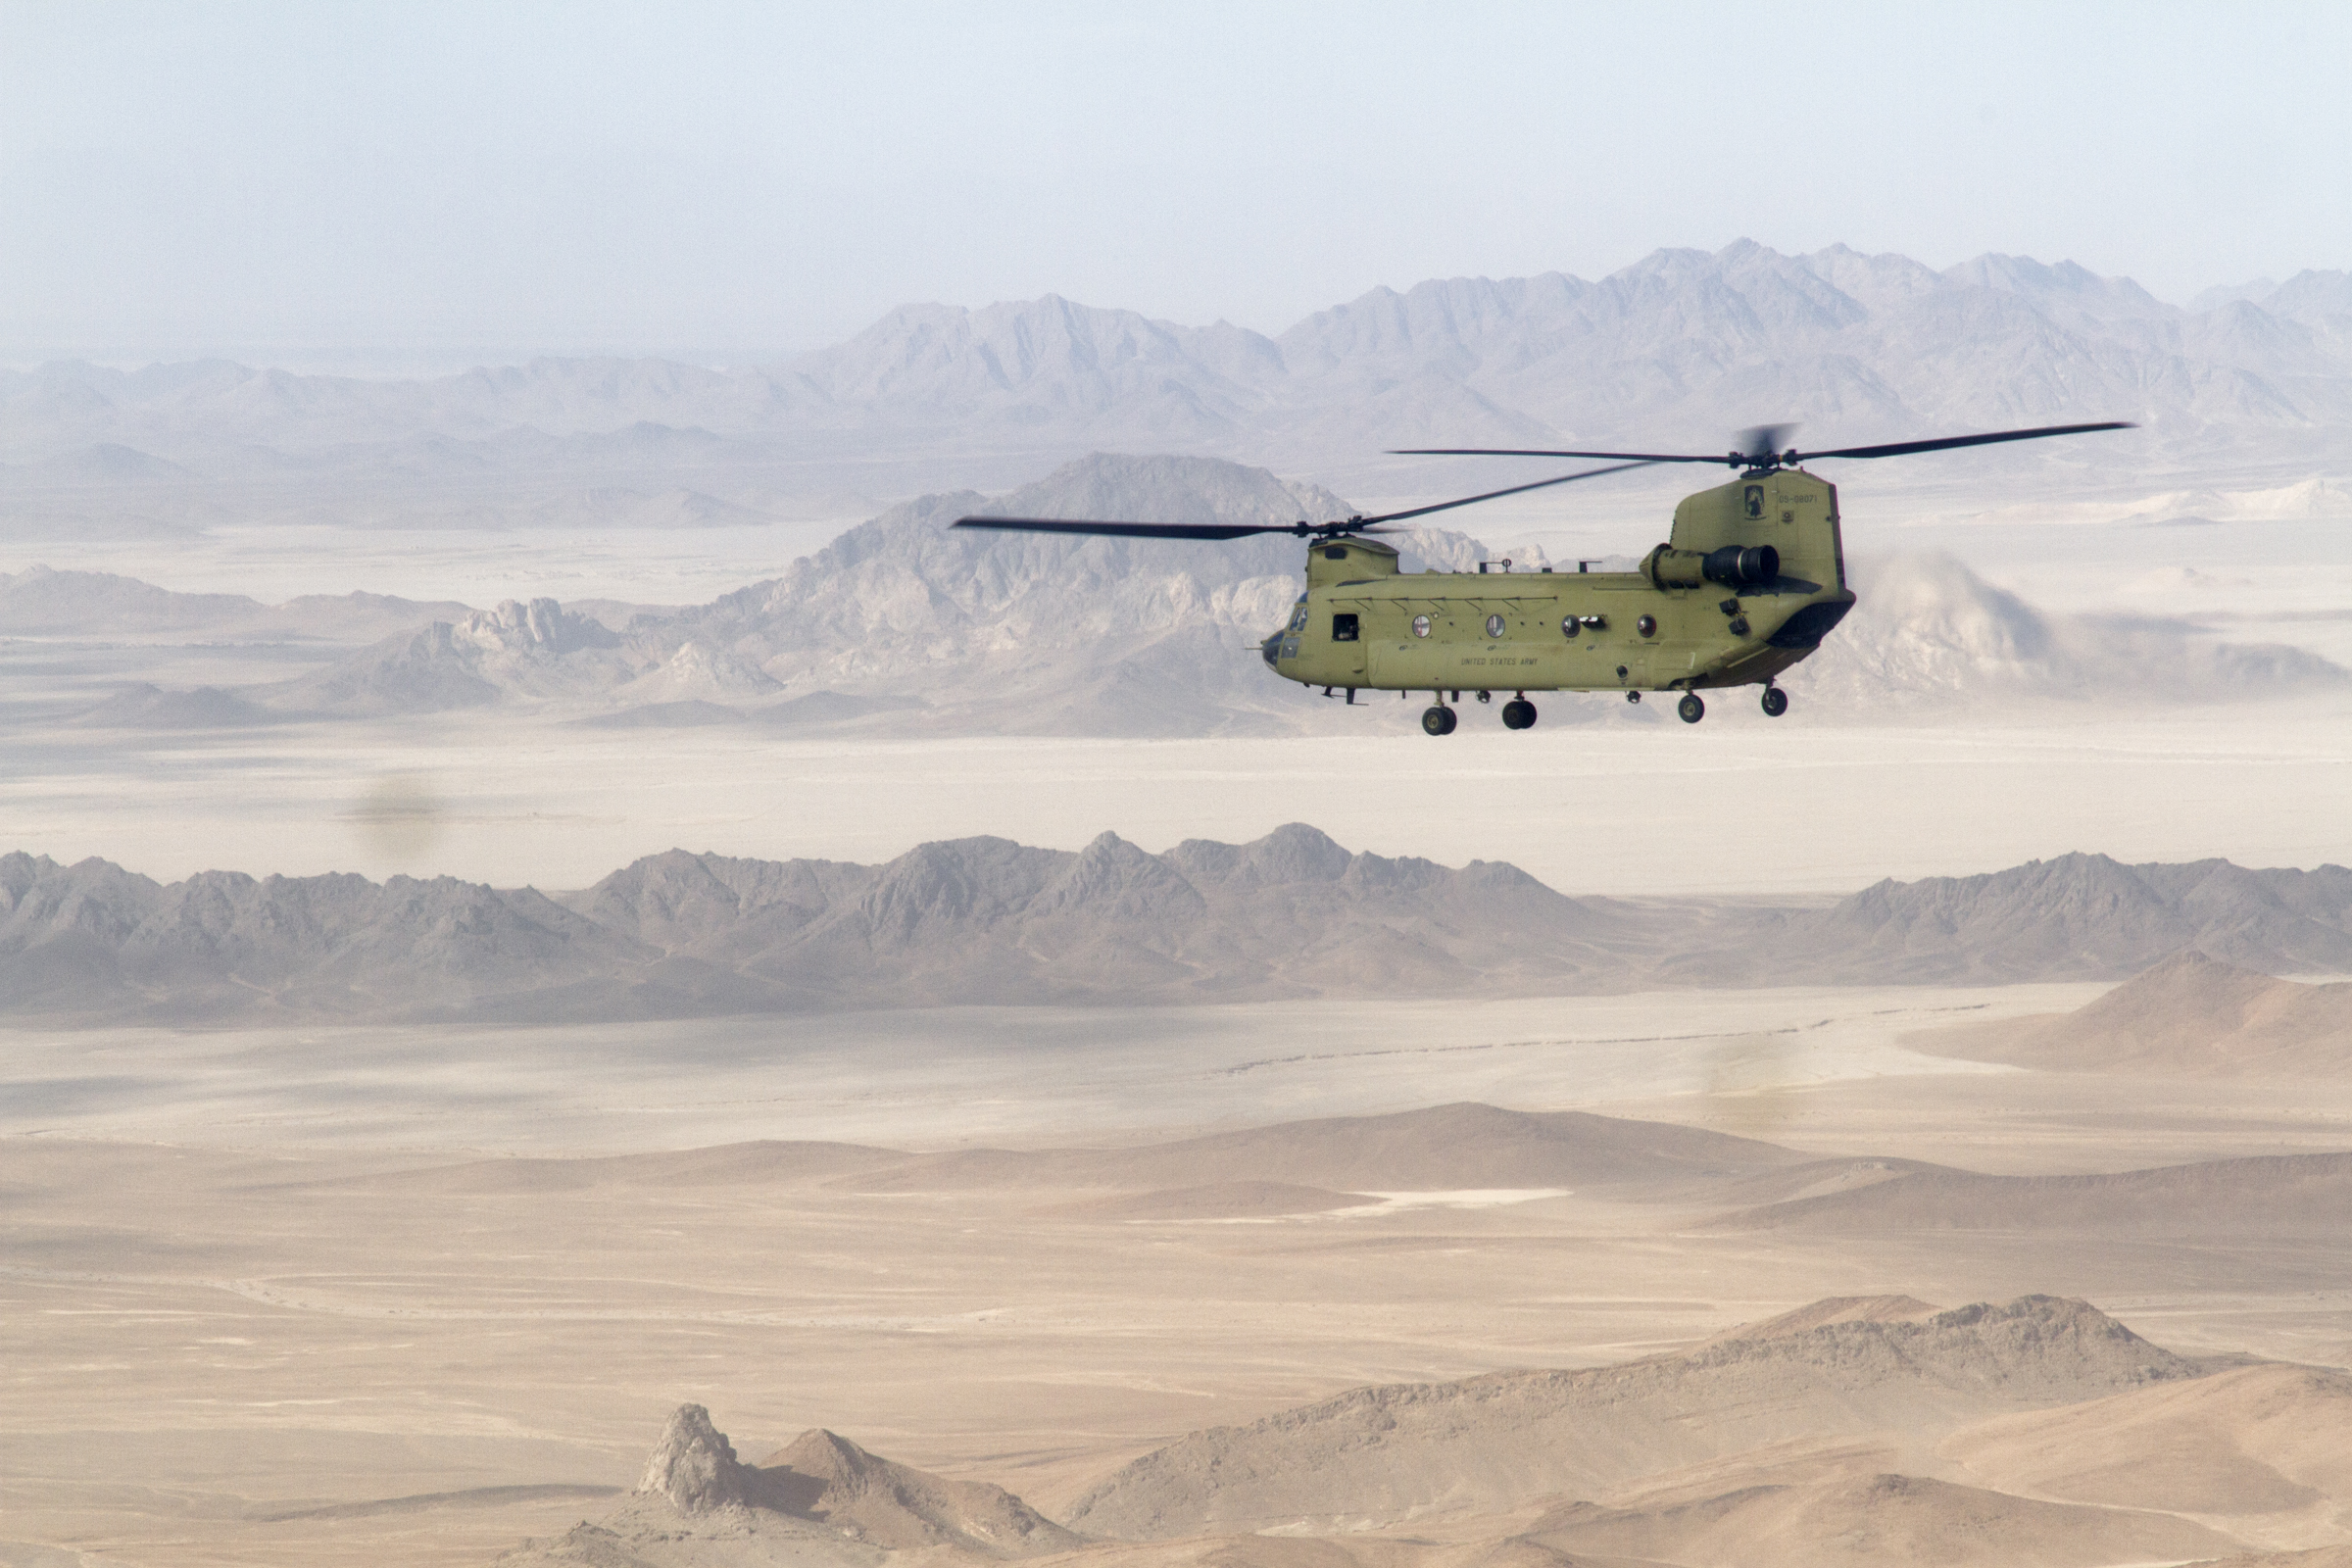 US Army chinook helicopter returning from a mission in Bakwa (Bakwa, Afghanistan).